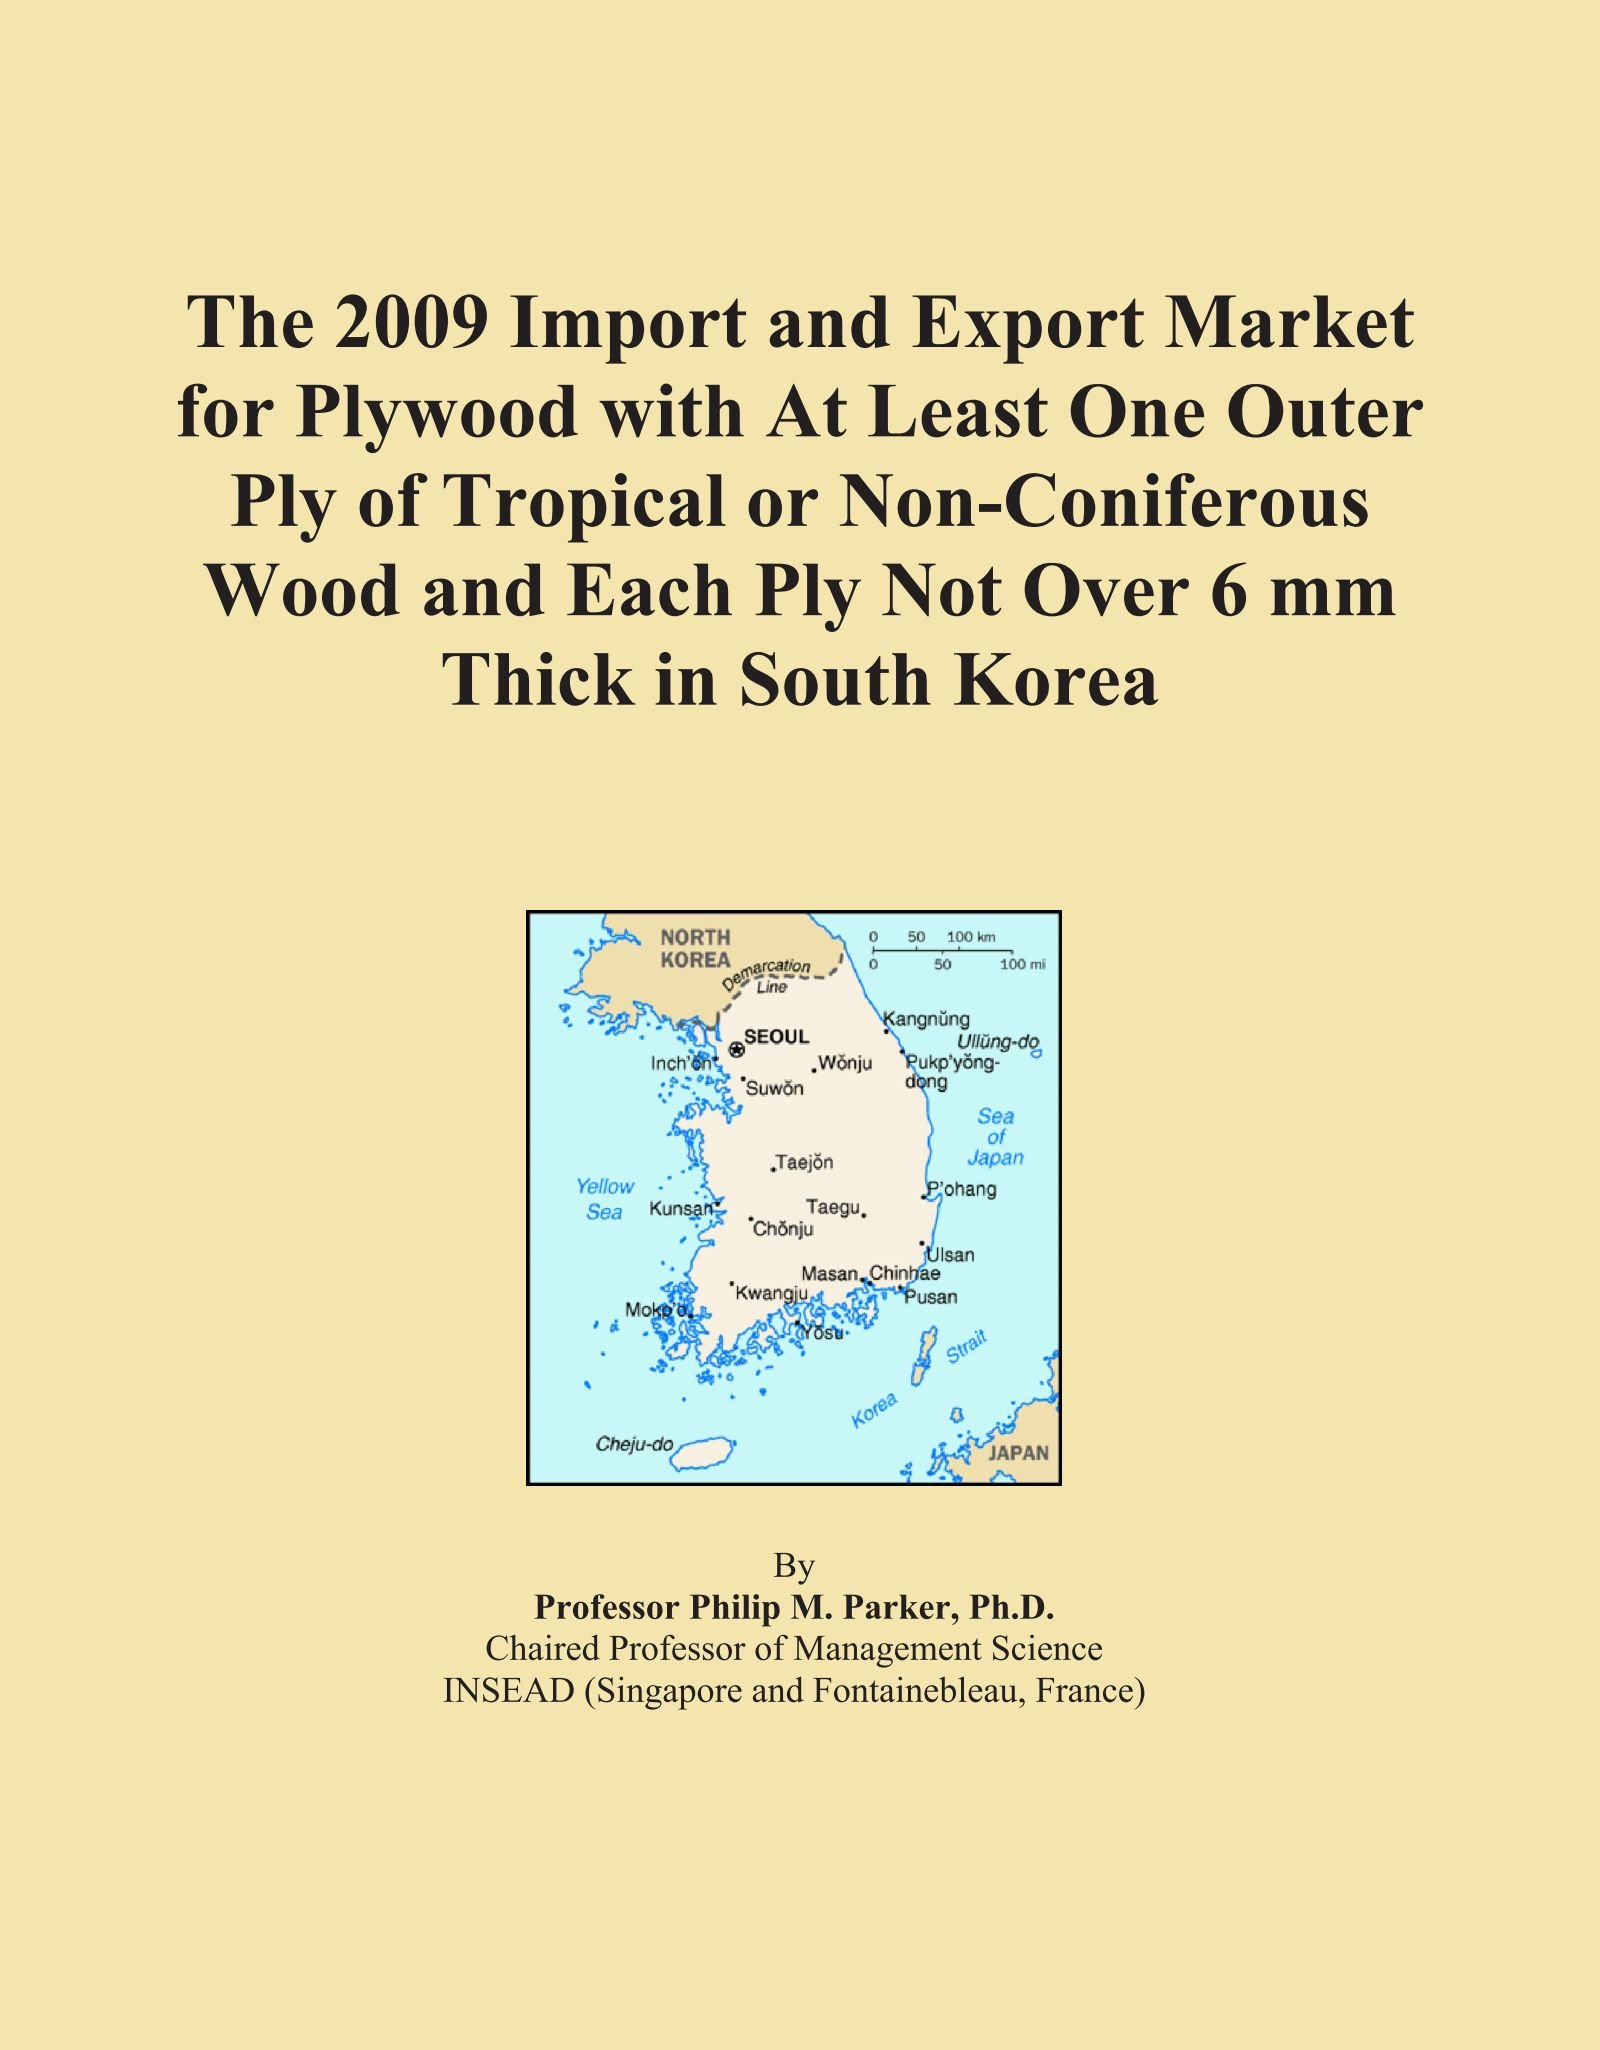 Download The 2009 Import and Export Market for Plywood with At Least One Outer Ply of Tropical or Non-Coniferous Wood and Each Ply Not Over 6 mm Thick in South Korea pdf